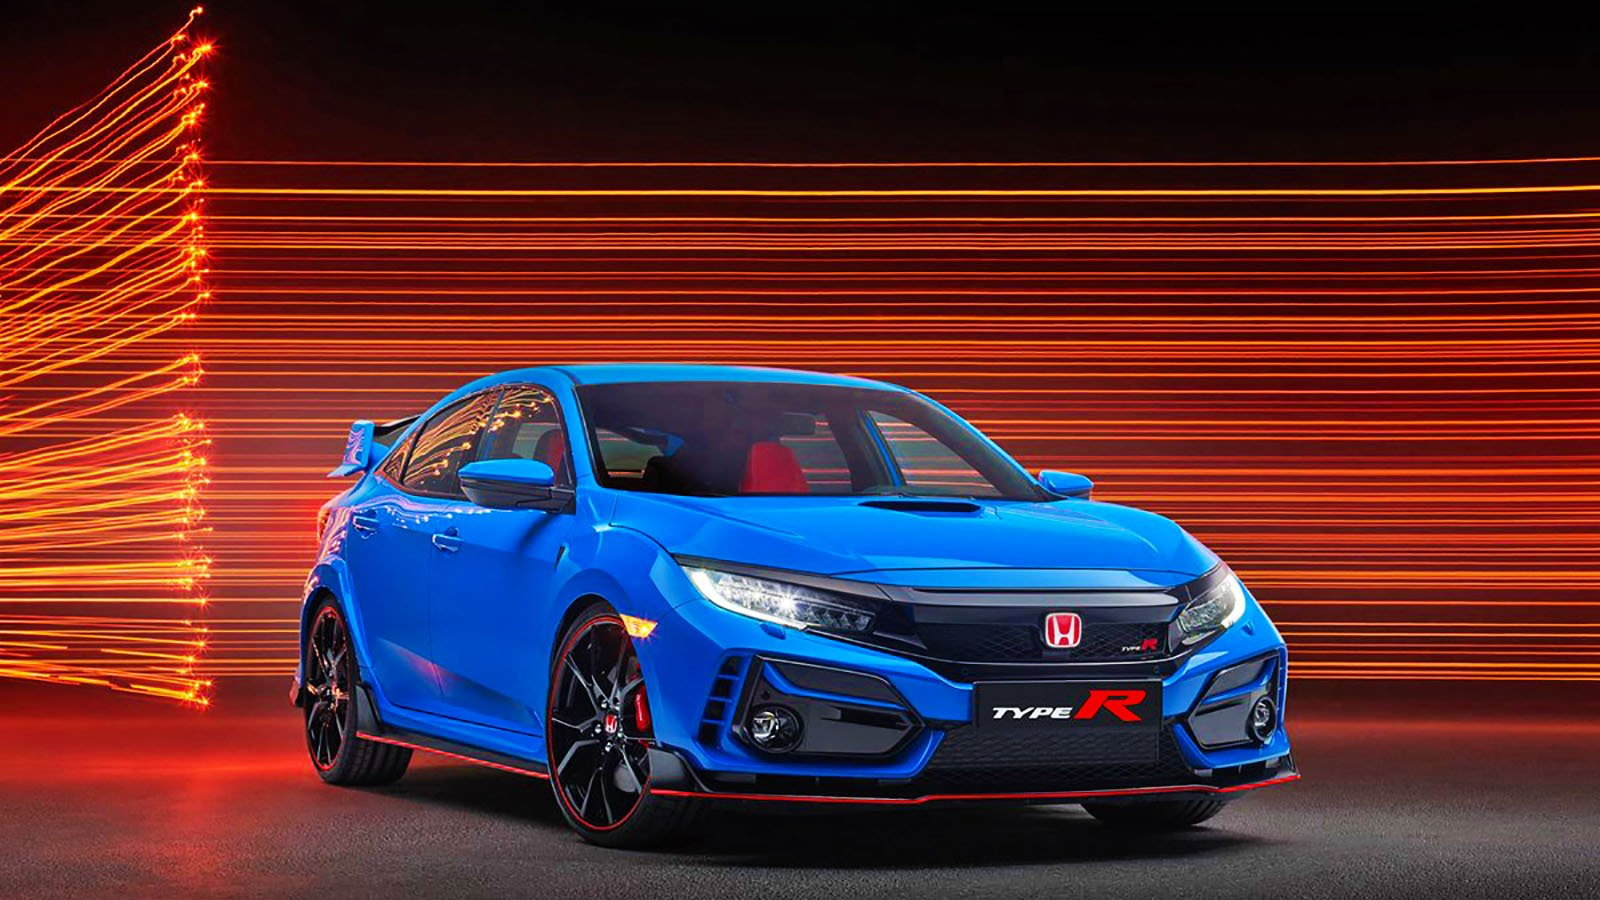 2017 Acura Nsx For Sale >> Revised 2020 Civic Type R Debuts at TAS 2020 | Honda-tech